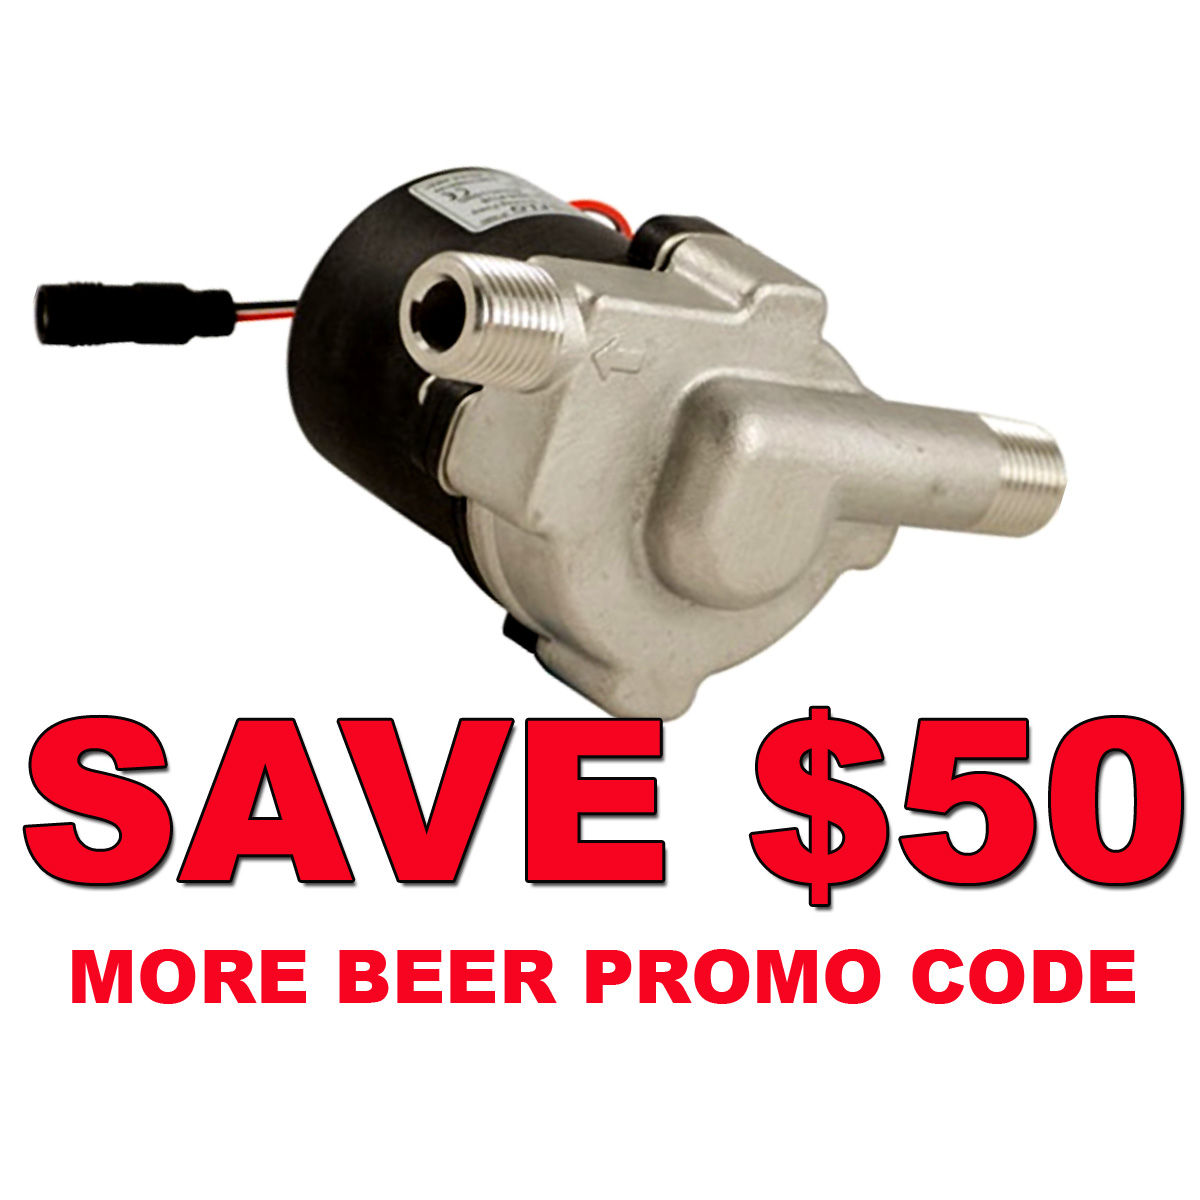 MoreBeer Save $50 On A New Stainless Steel Compact Transfer Pump and Get Free Shipping MoreBeer Promo Code Coupon Code